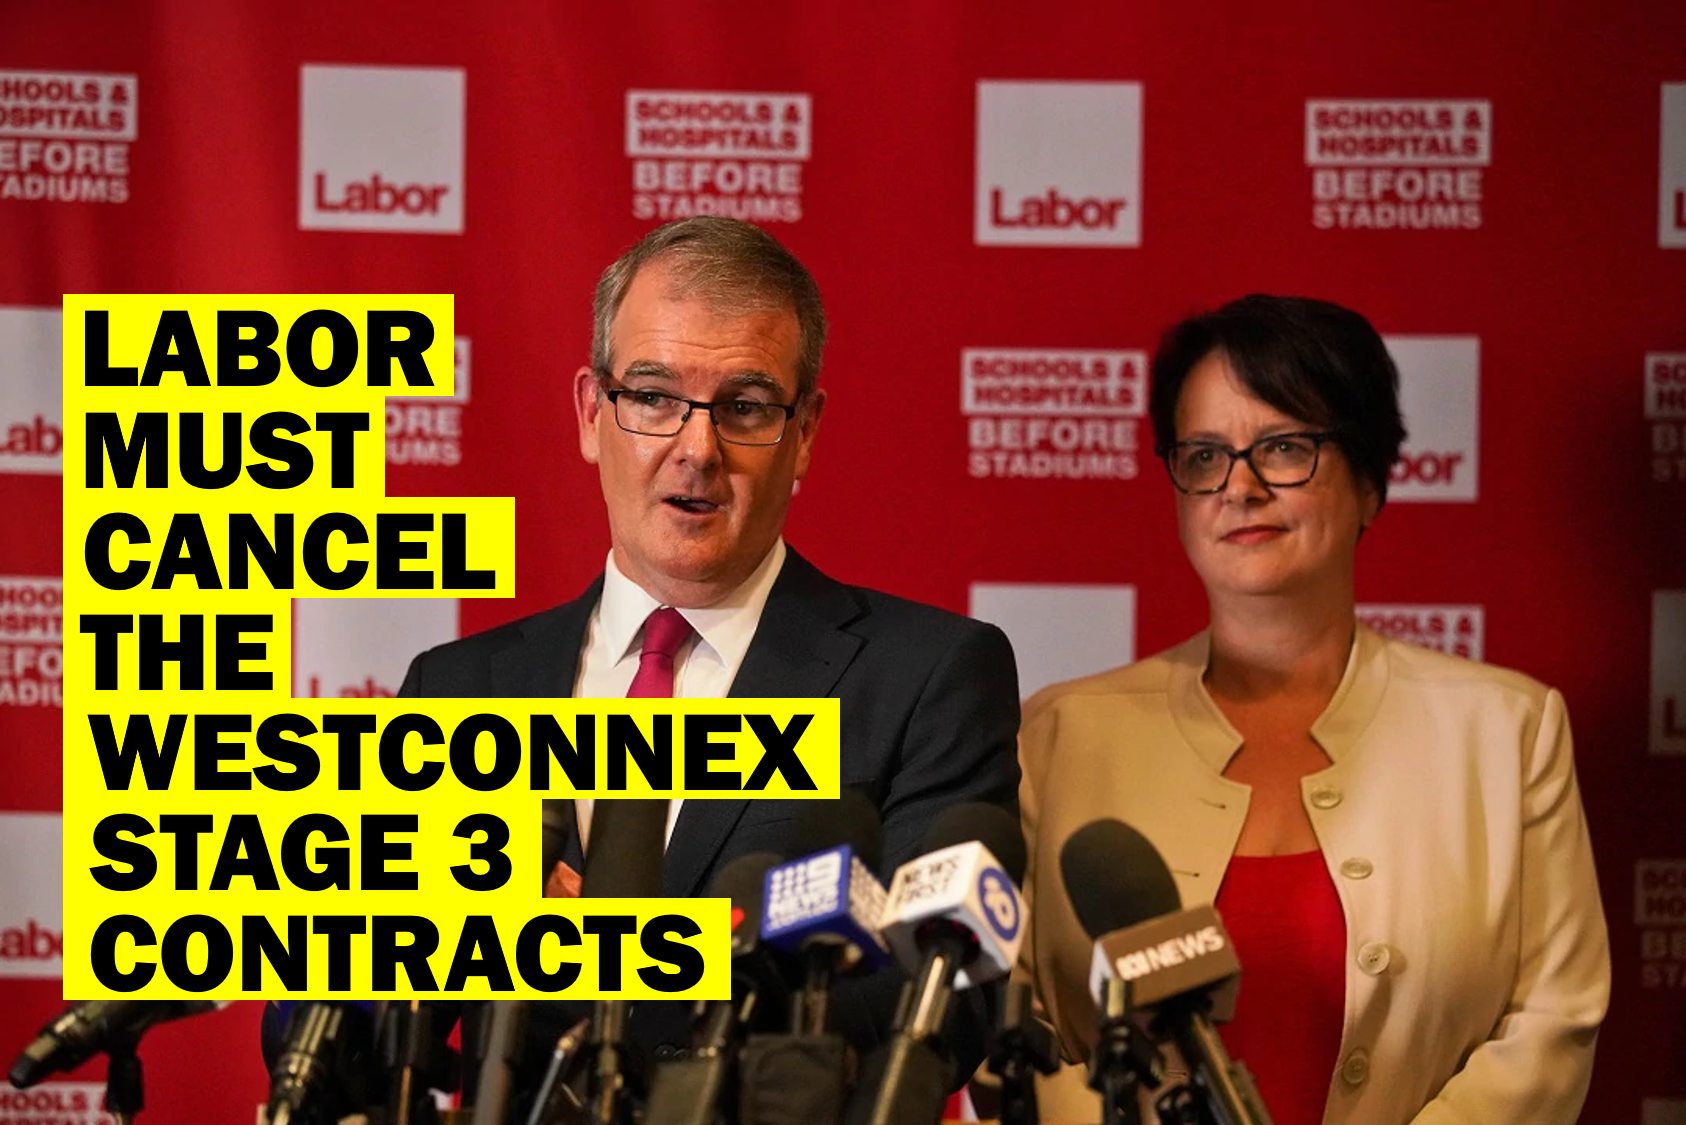 labor_must_cancel_the_westconnex_stage_3_contracts_2.png